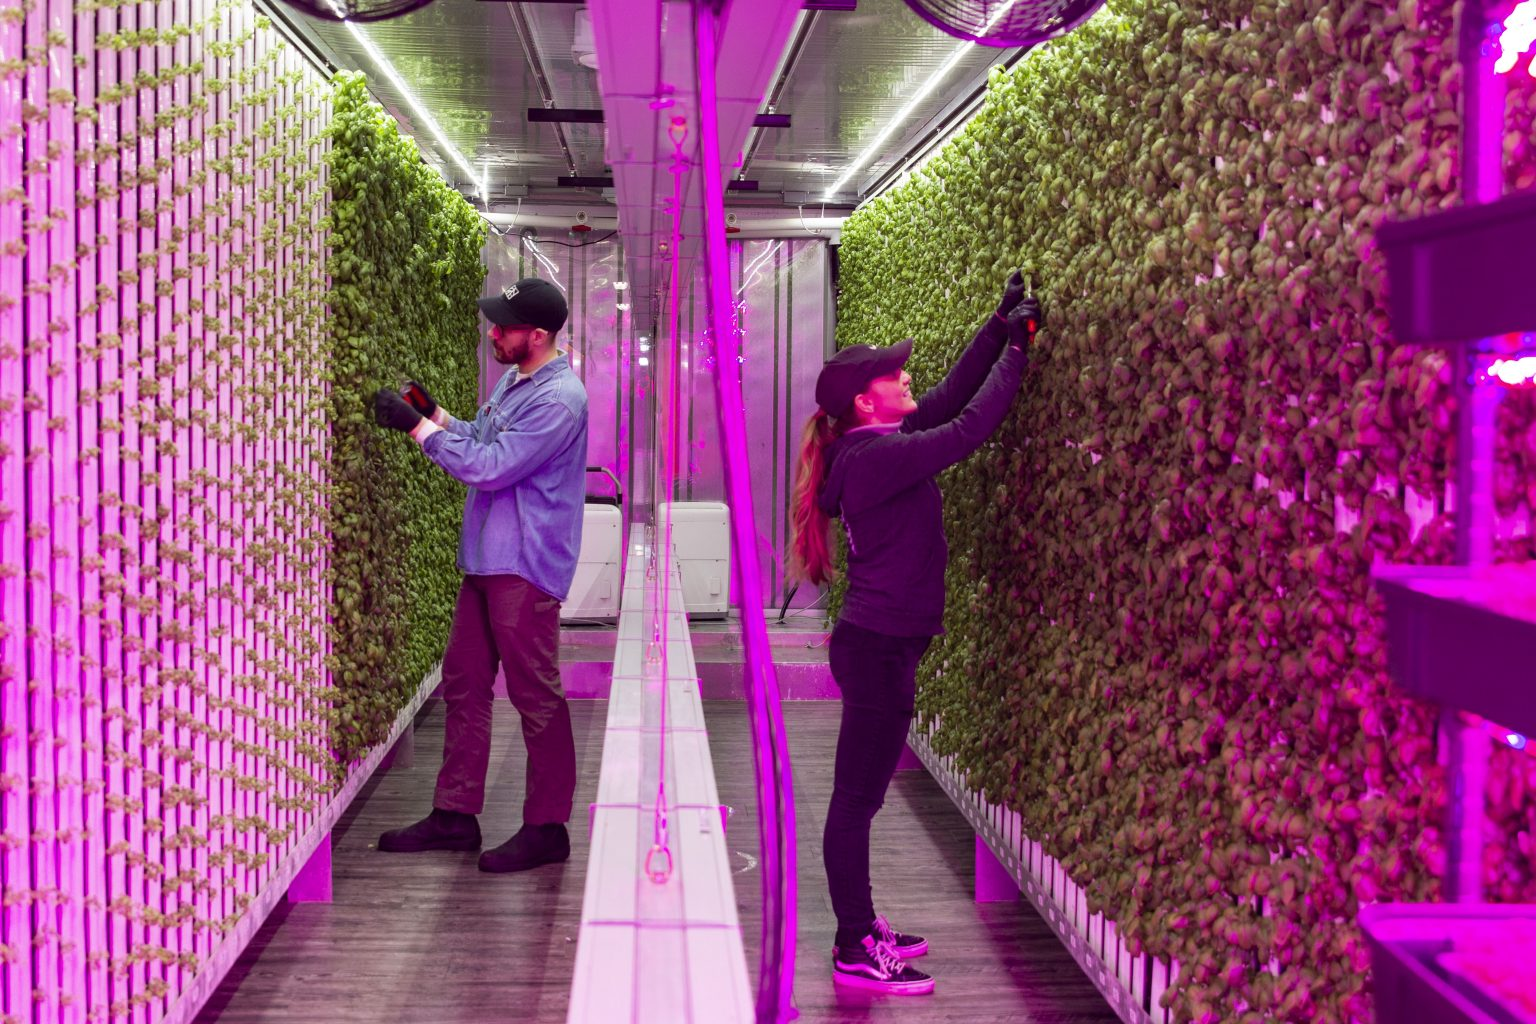 Square Roots: Increasing Access to Fresh Food